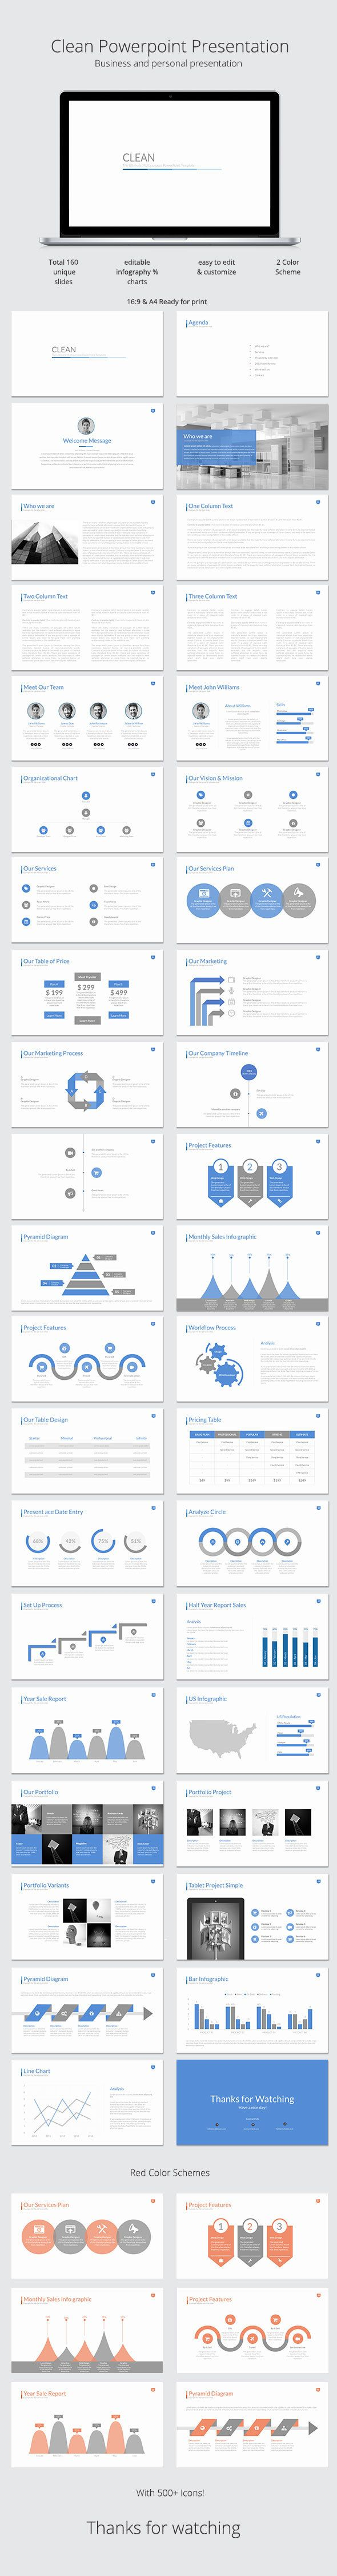 Coolmathgamesus  Personable  Ideas About Powerpoint Presentations On Pinterest With Exquisite Clean Powerpoint Template With Agreeable Make A Poster On Powerpoint Also How To Use Slide Master In Powerpoint  In Addition Converting Word Document To Powerpoint And Mickey Mouse Powerpoint Template As Well As Presentation Platforms Other Than Powerpoint Additionally Newtons Laws Of Motion Powerpoint From Pinterestcom With Coolmathgamesus  Exquisite  Ideas About Powerpoint Presentations On Pinterest With Agreeable Clean Powerpoint Template And Personable Make A Poster On Powerpoint Also How To Use Slide Master In Powerpoint  In Addition Converting Word Document To Powerpoint From Pinterestcom